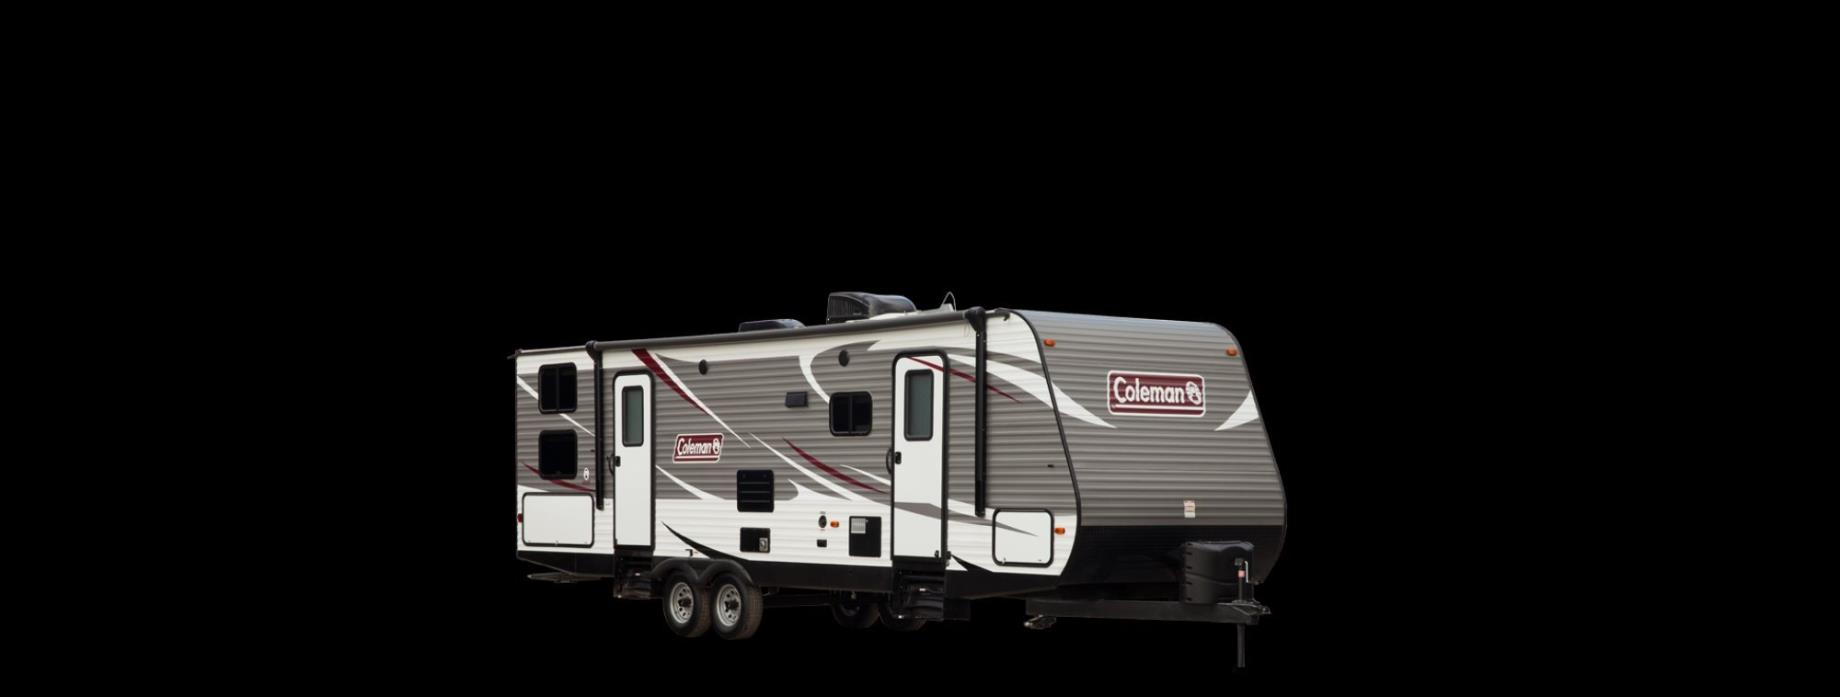 2017 Coleman COLEMAN CTS337BH